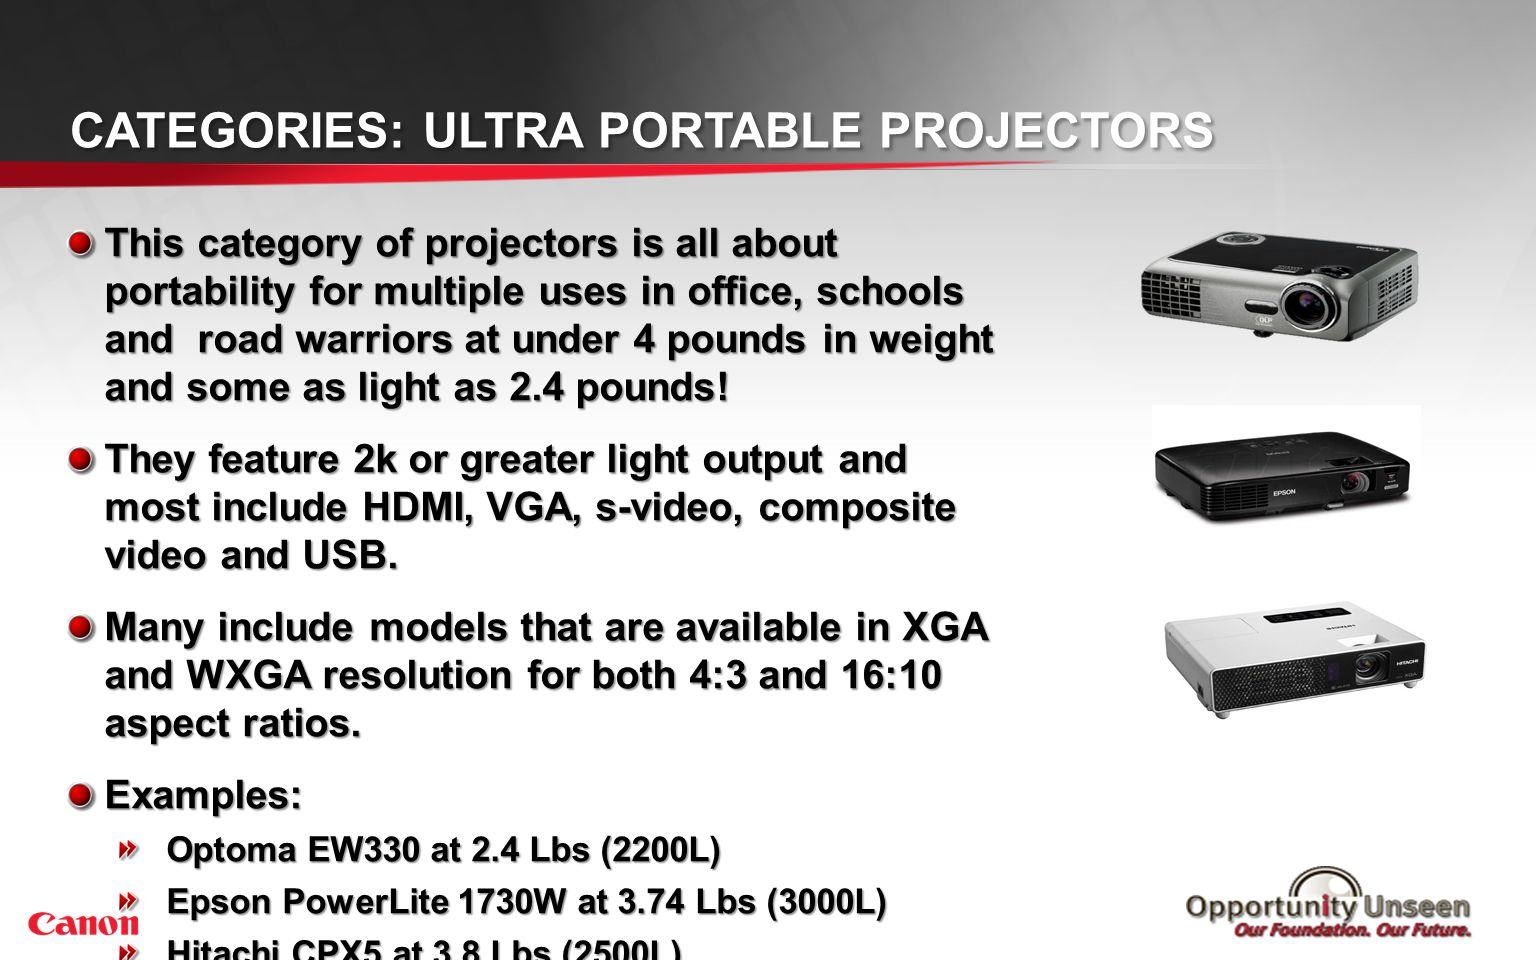 Categories: Portable Projectors <10 Lbs